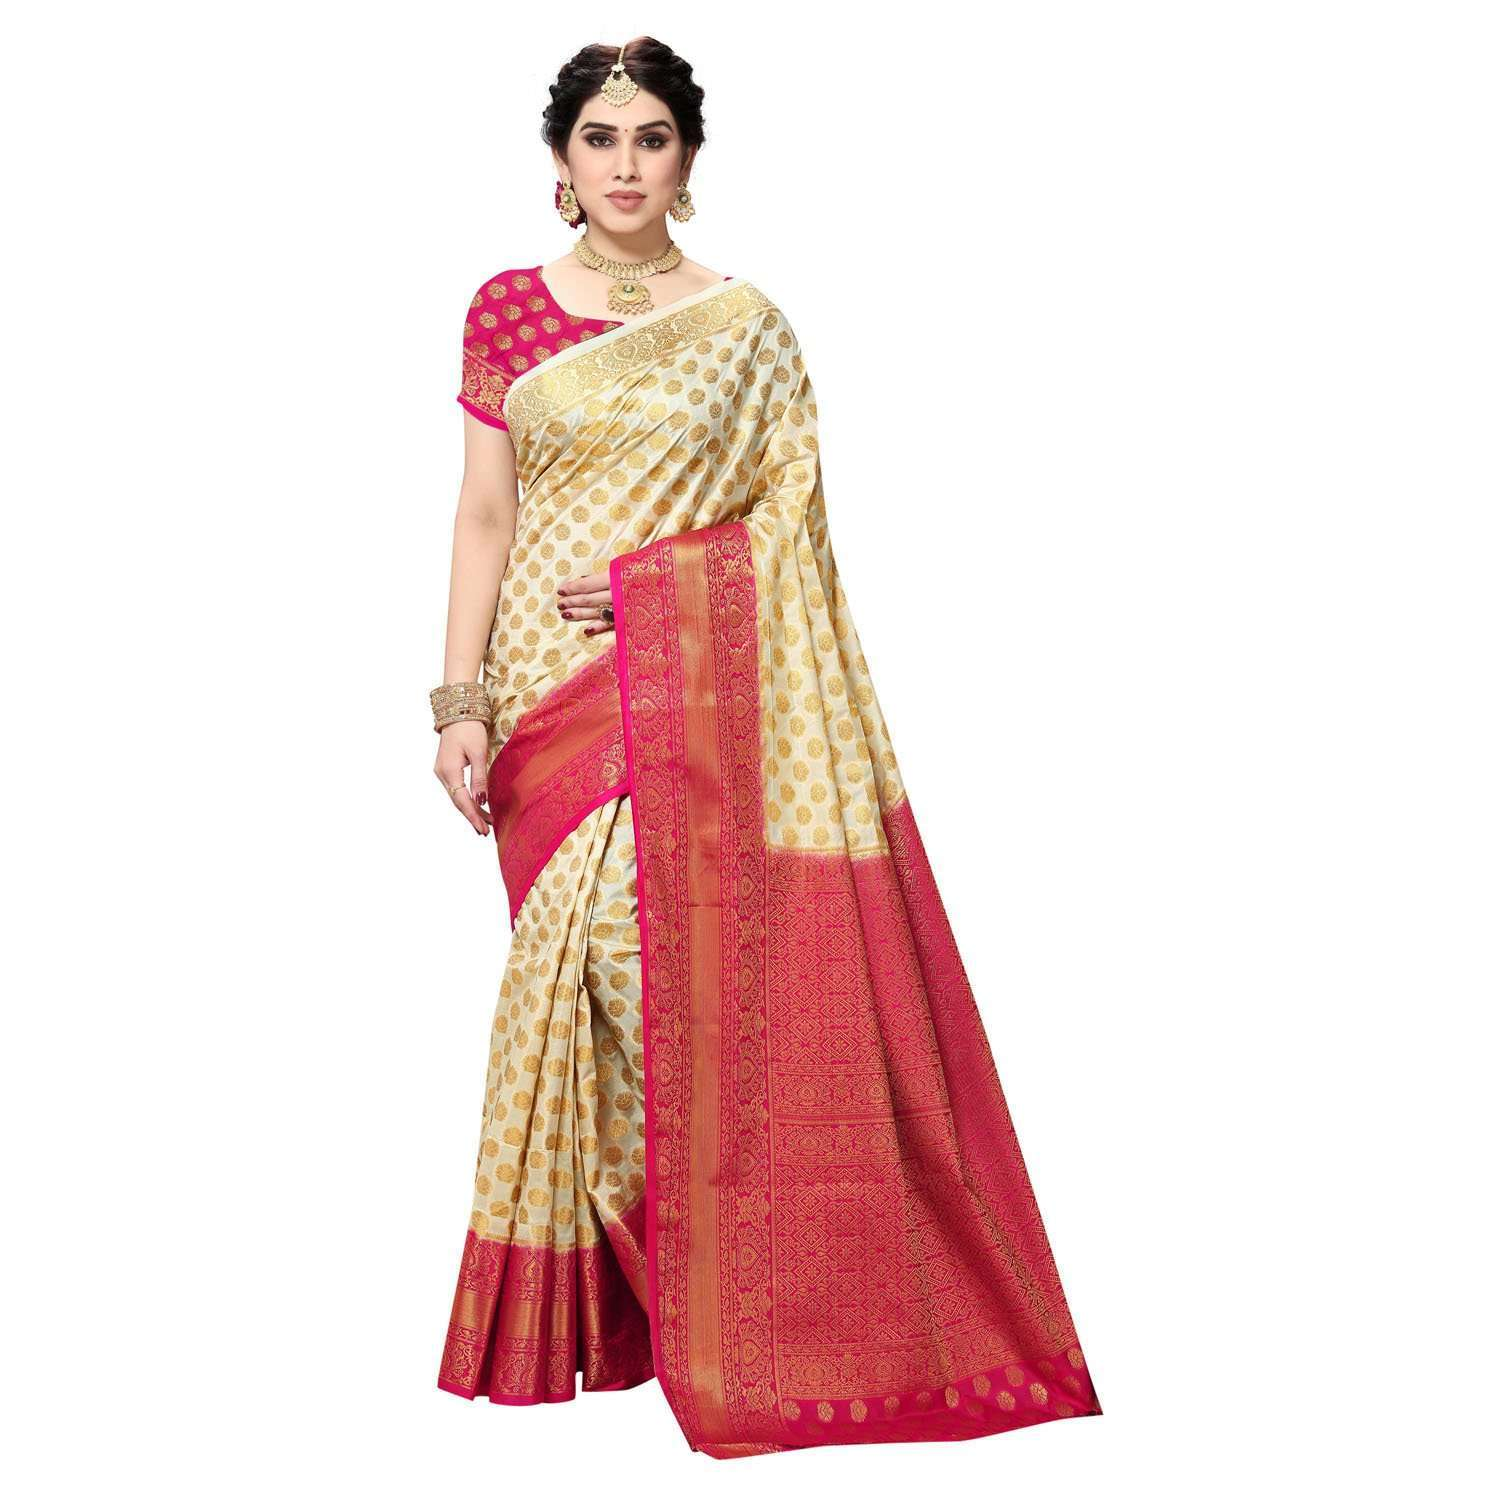 arars Women's Kanchipuram Pattu banarasi Silk Saree With Blouse (516_cream&rani )